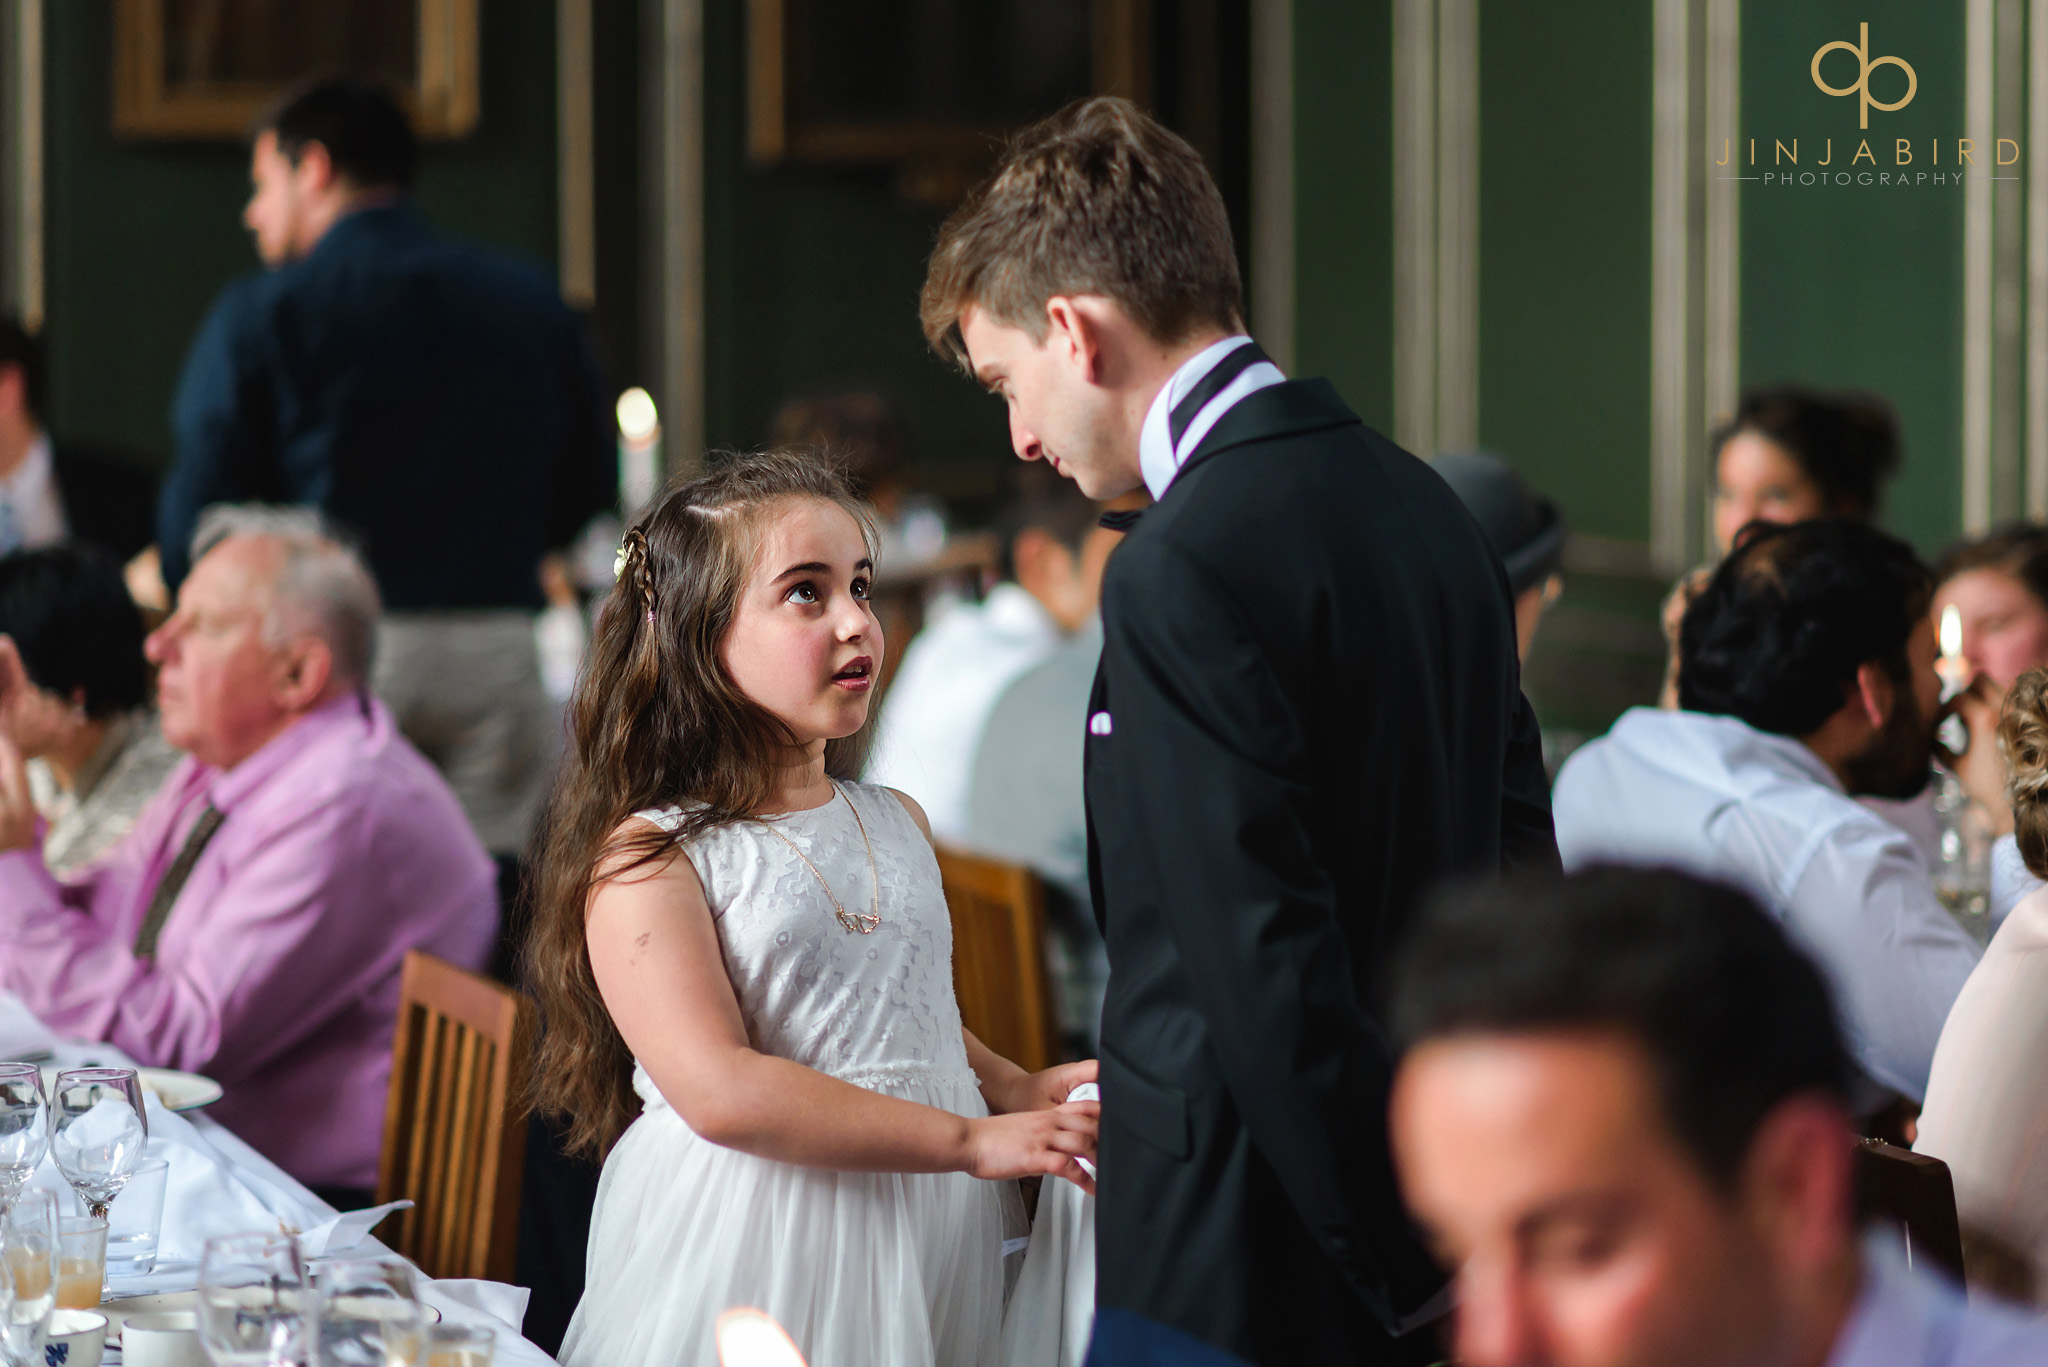 groom talking to small child